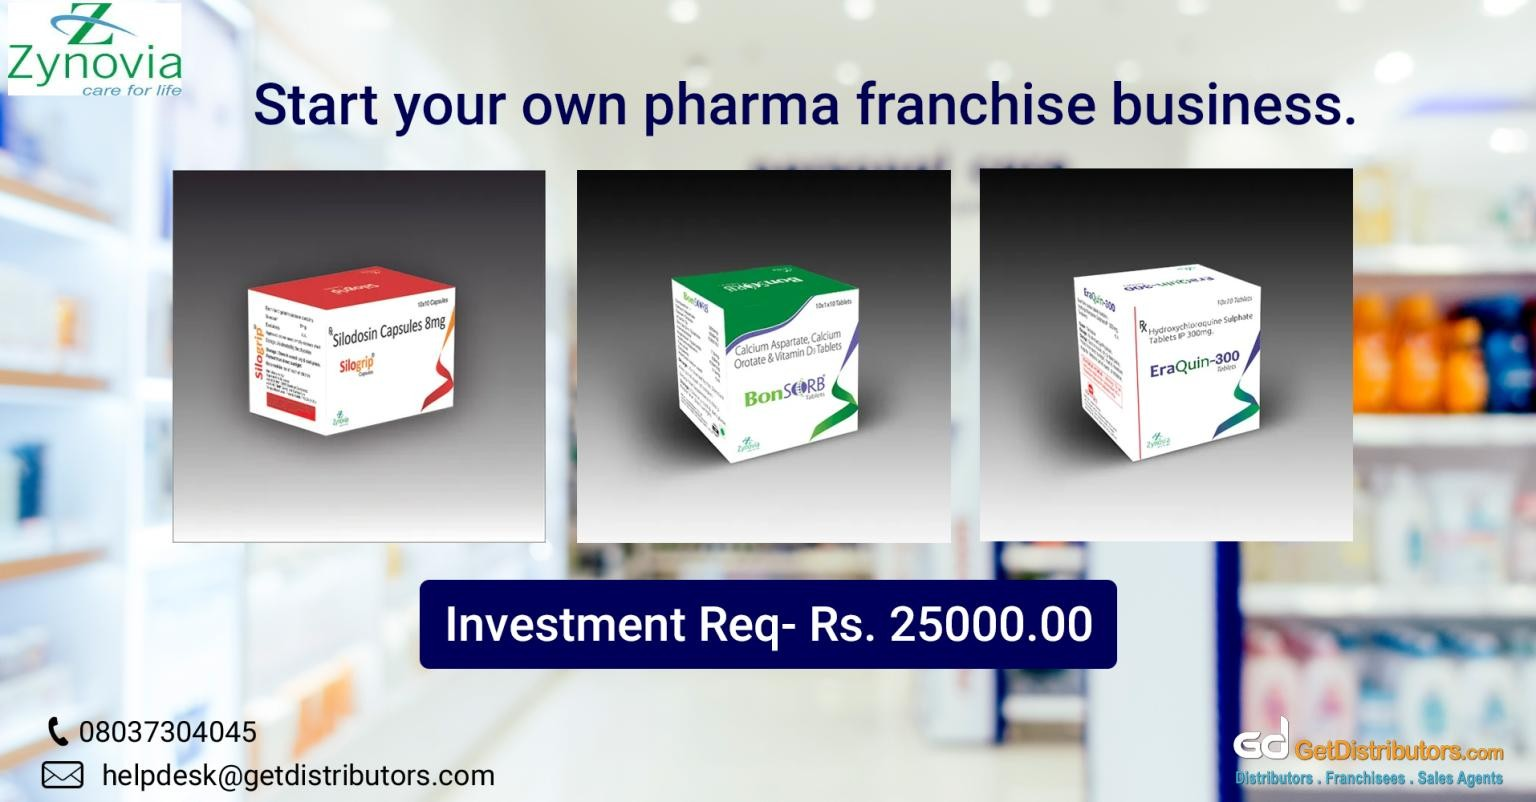 ISO Certified Organization Offering Superior Quality Pharmaceutical Products